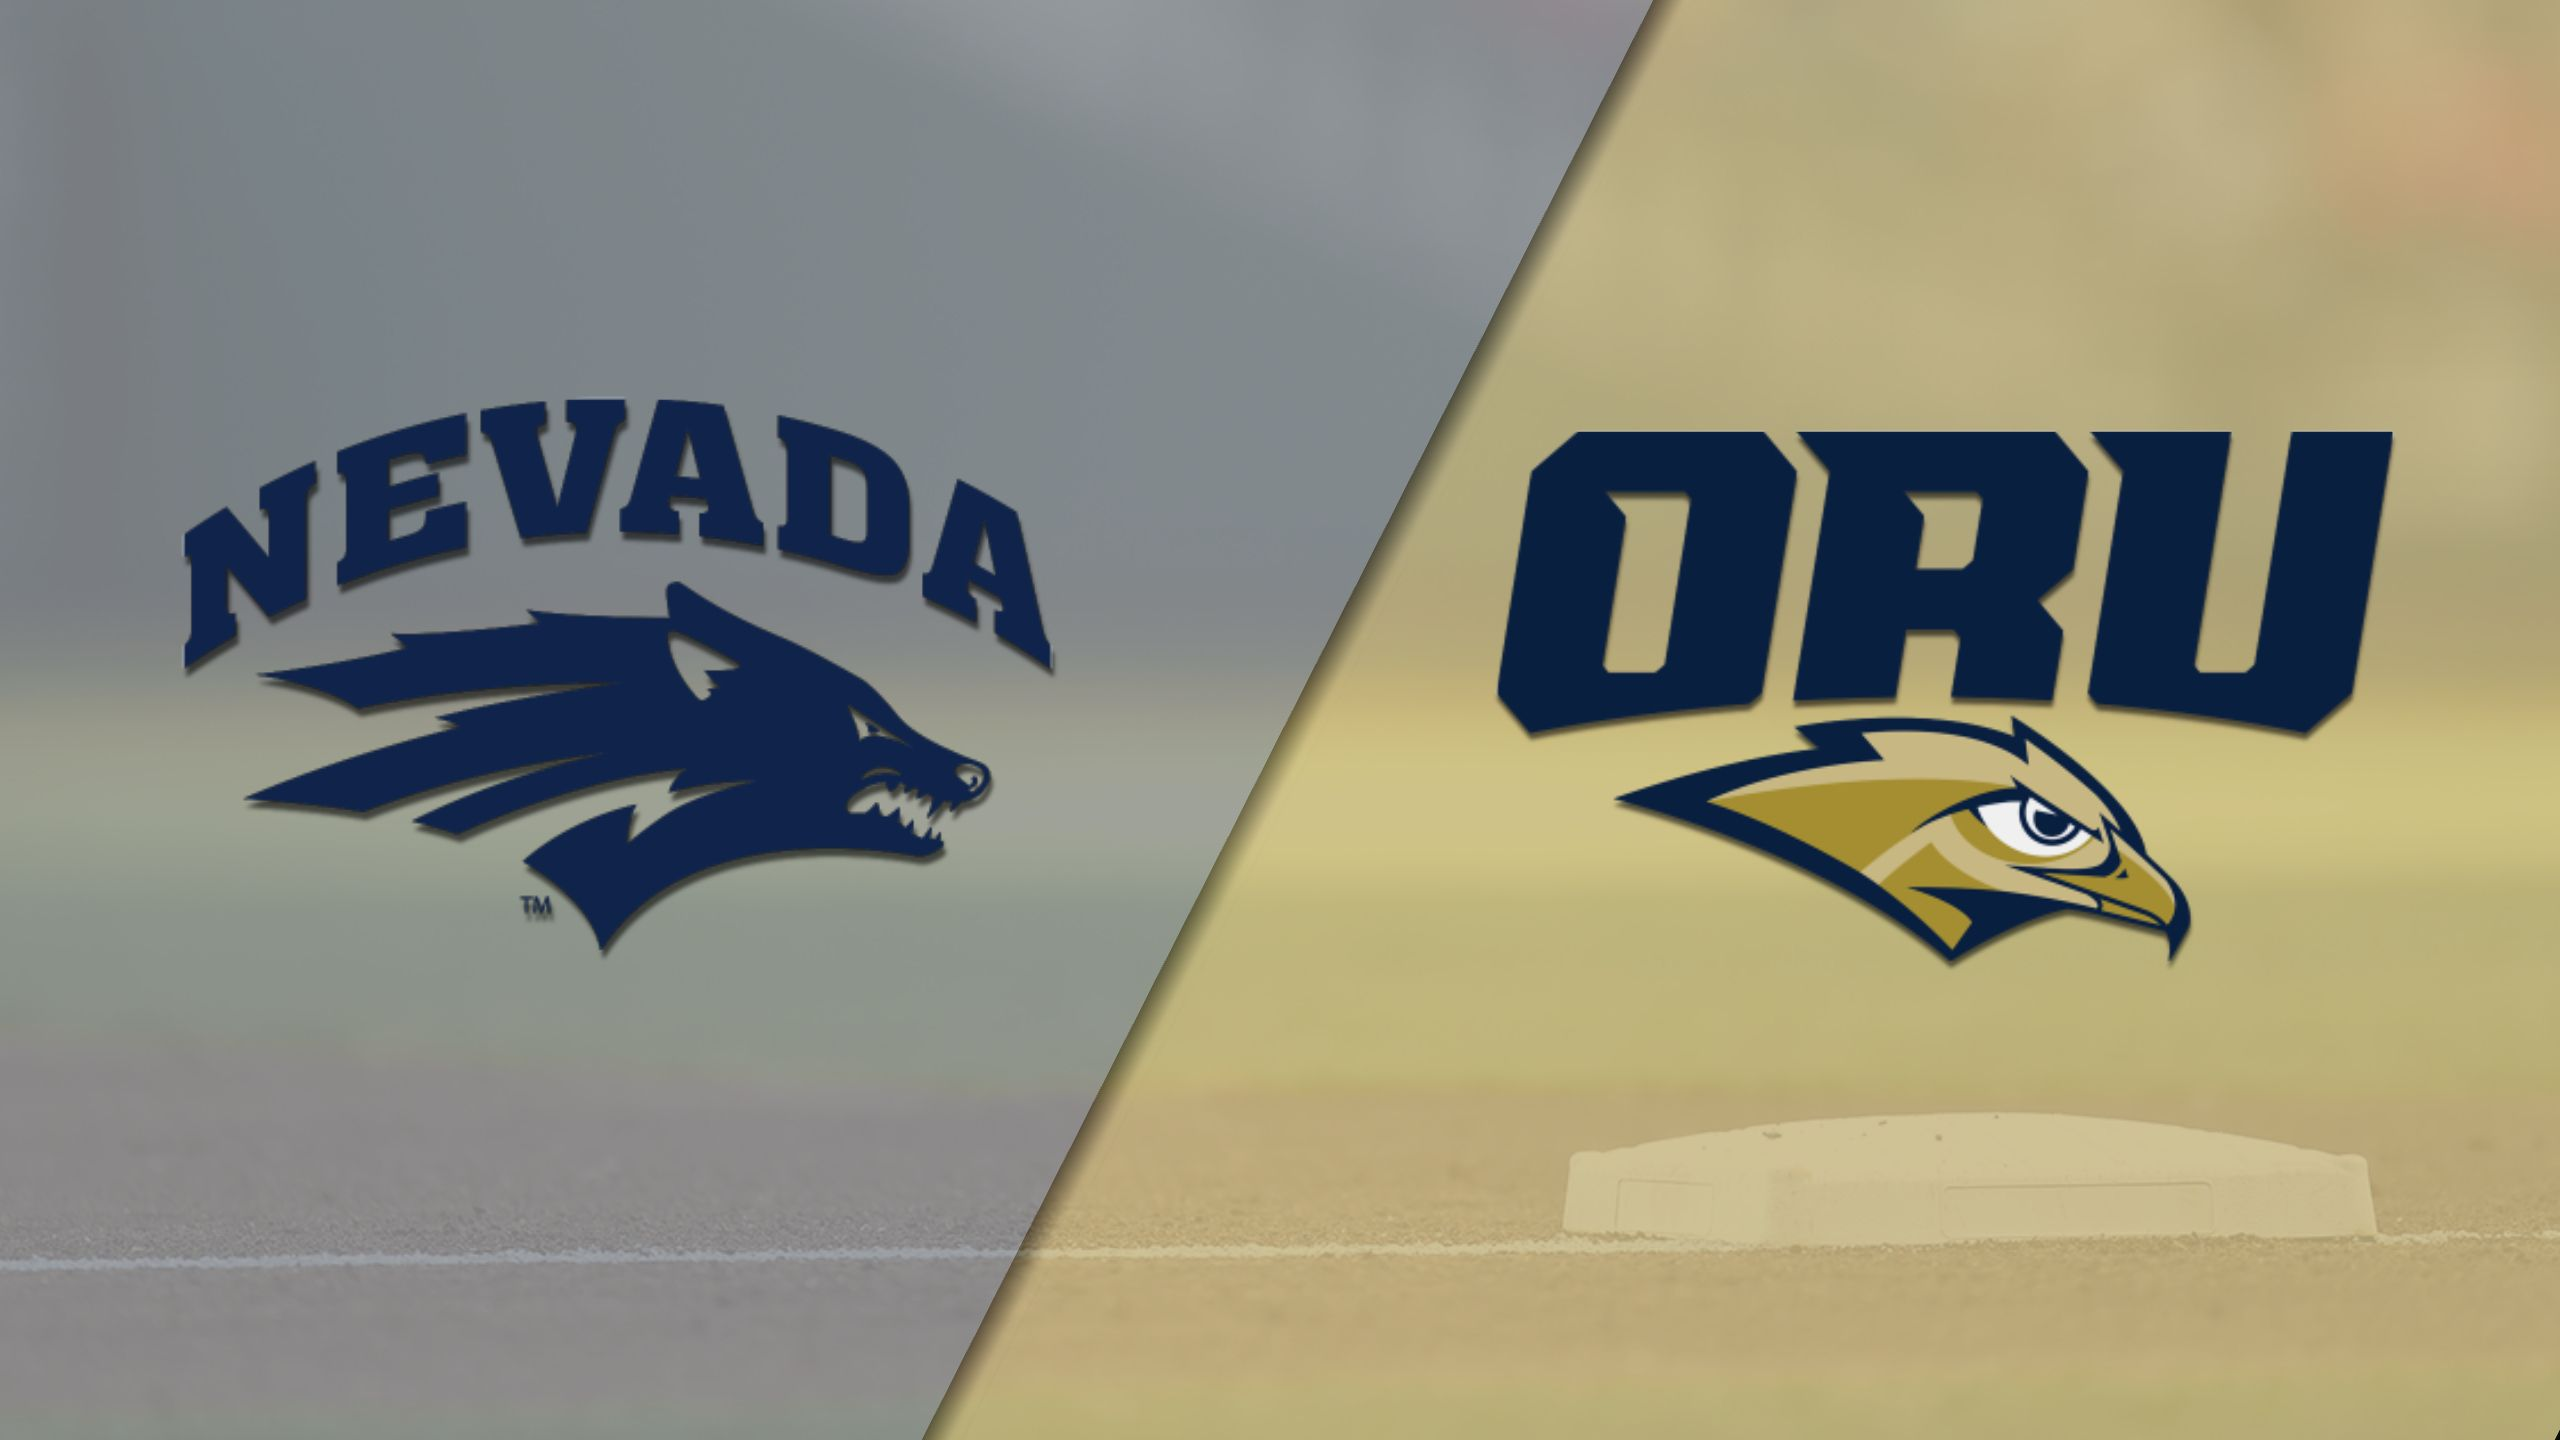 Nevada vs. Oral Roberts (Baseball)